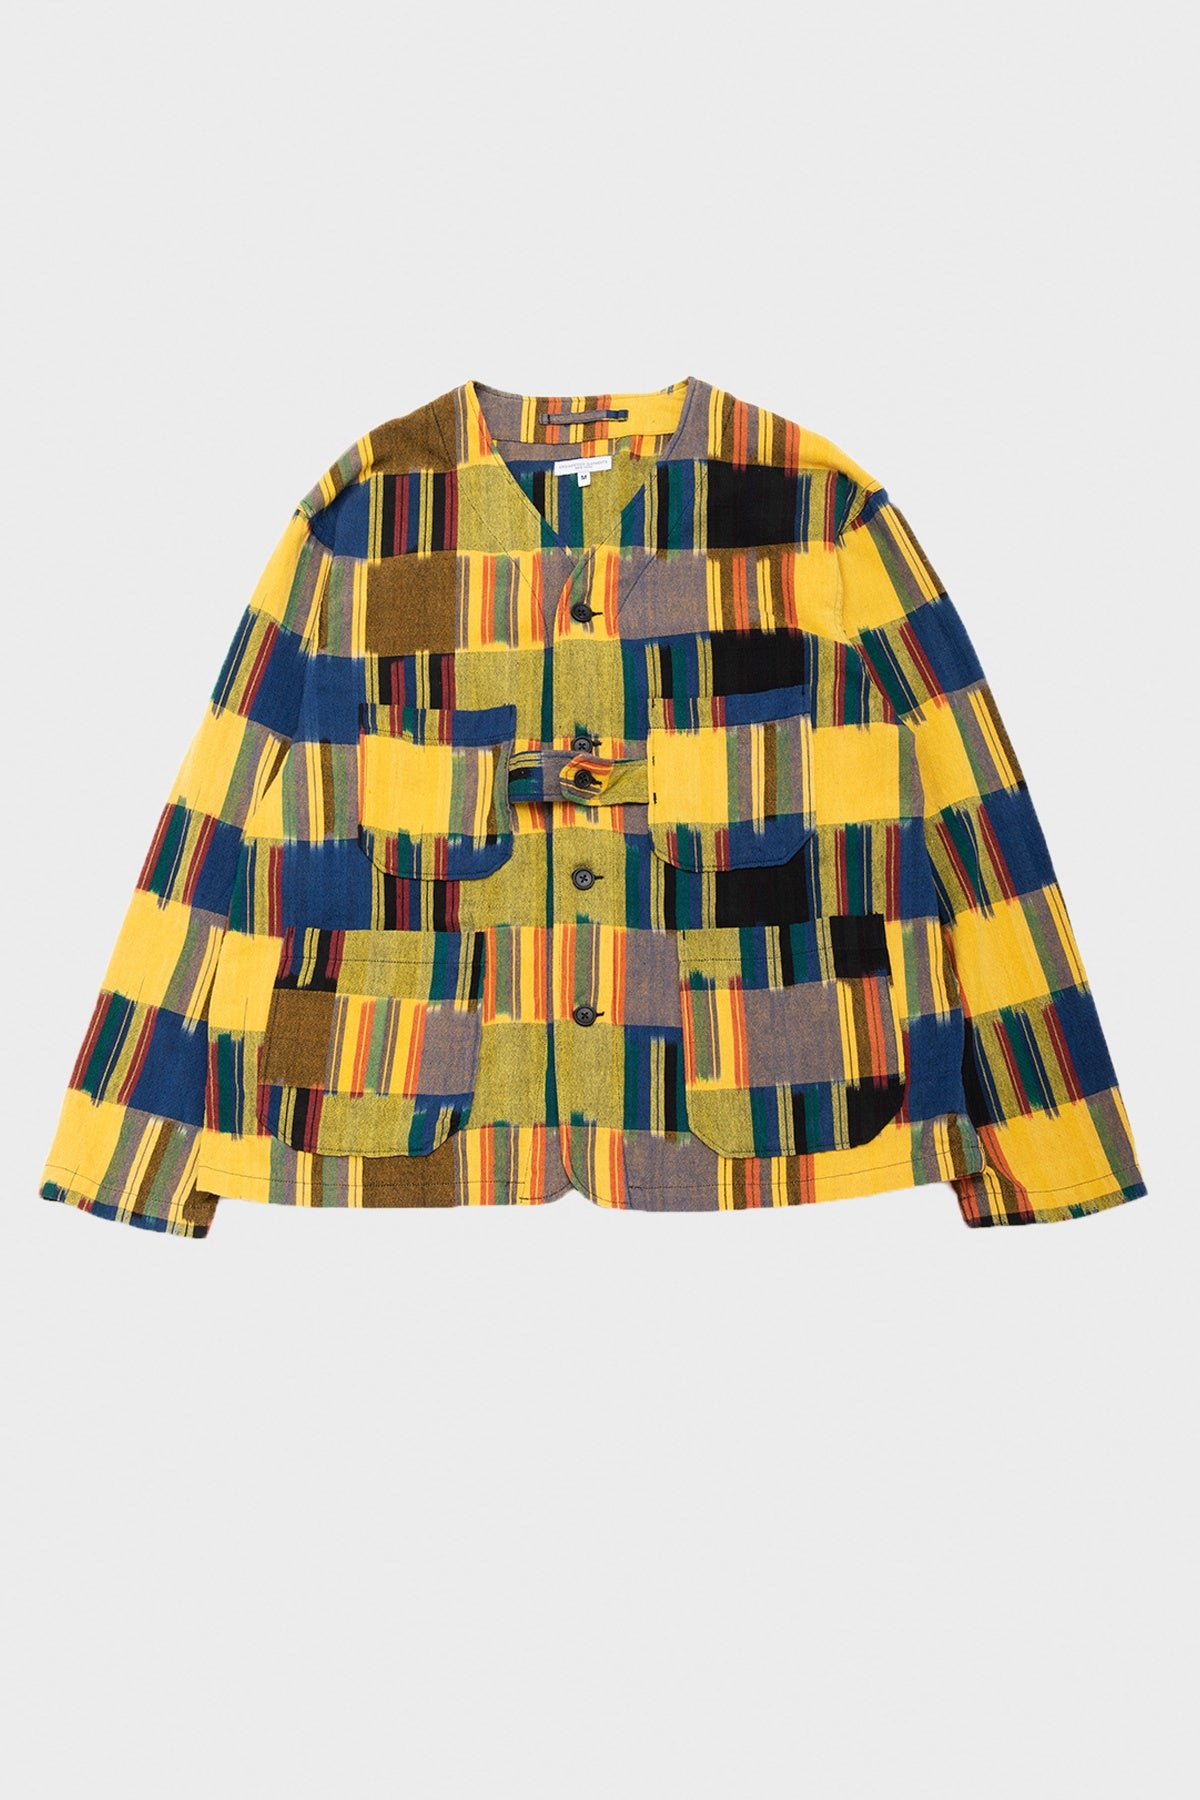 Engineered Garments - Cardigan Jacket - Multicolor Ikat - Canoe Club